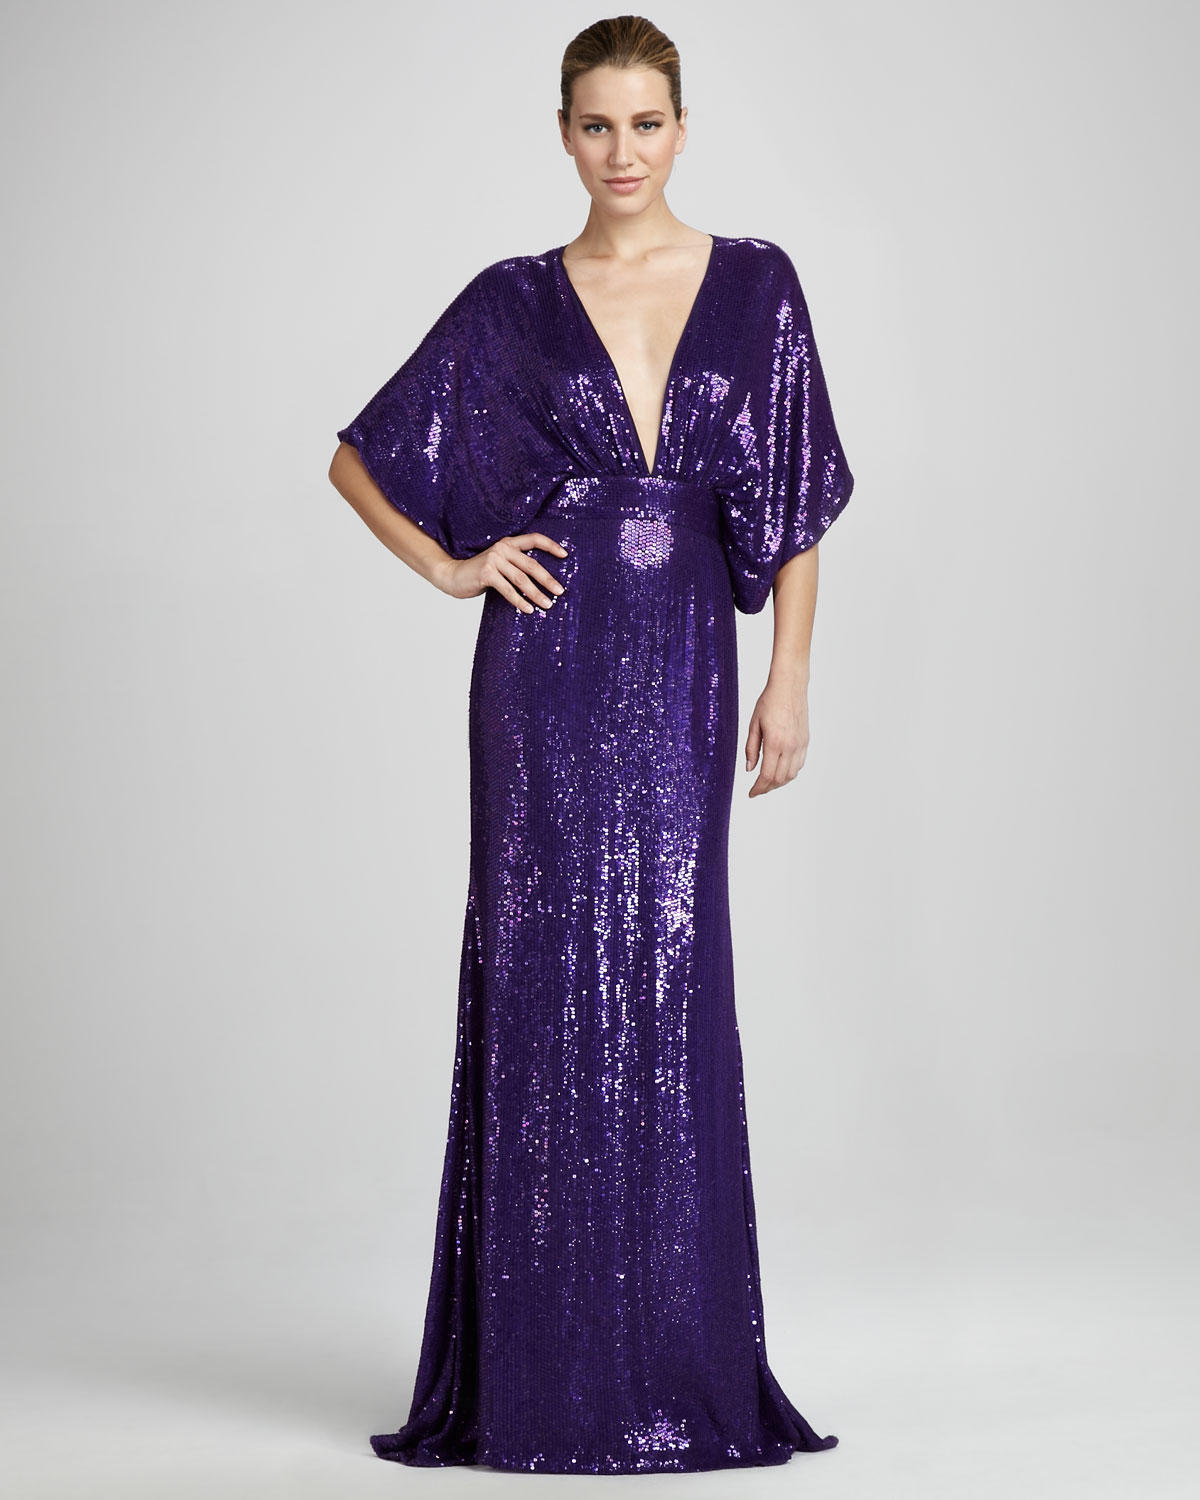 Lyst - Naeem Khan Sequined Kimono Gown in Purple